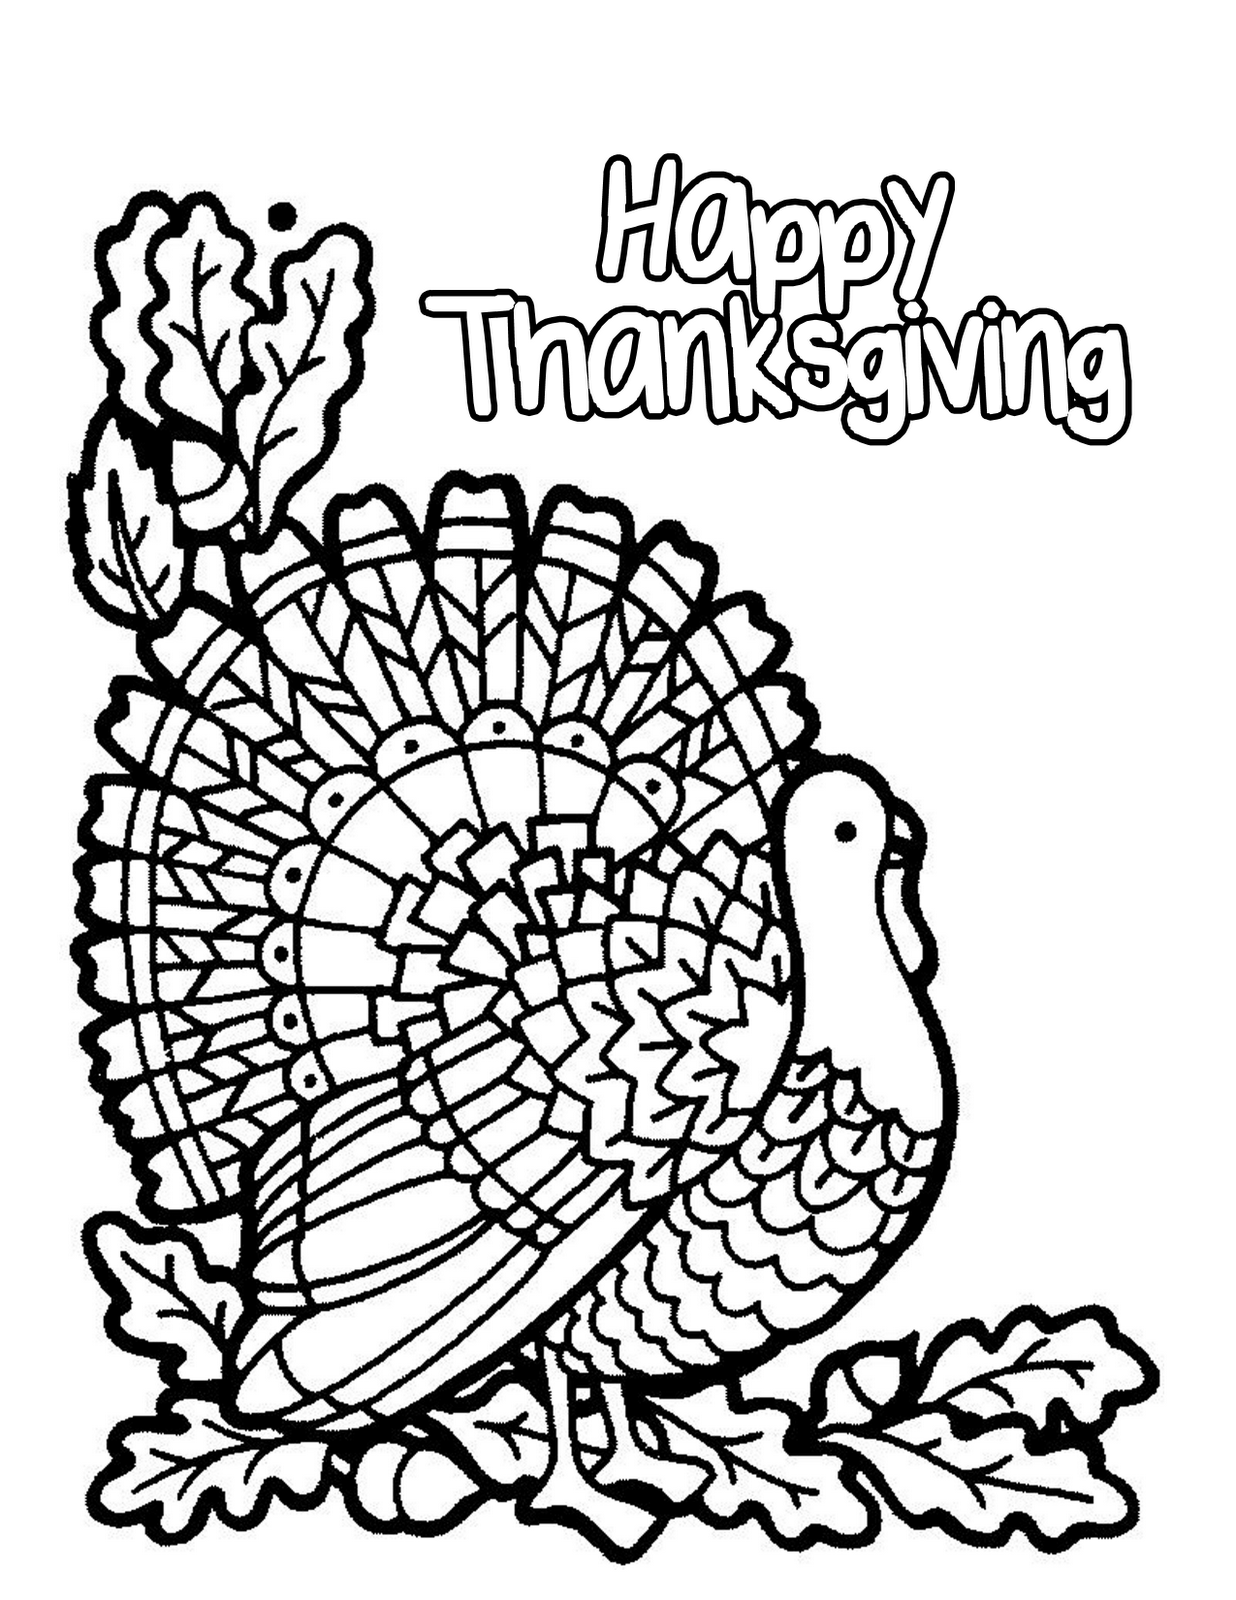 free turkey coloring pages happy thanksgiving 2 coloring page crafting the word of god pages coloring turkey free